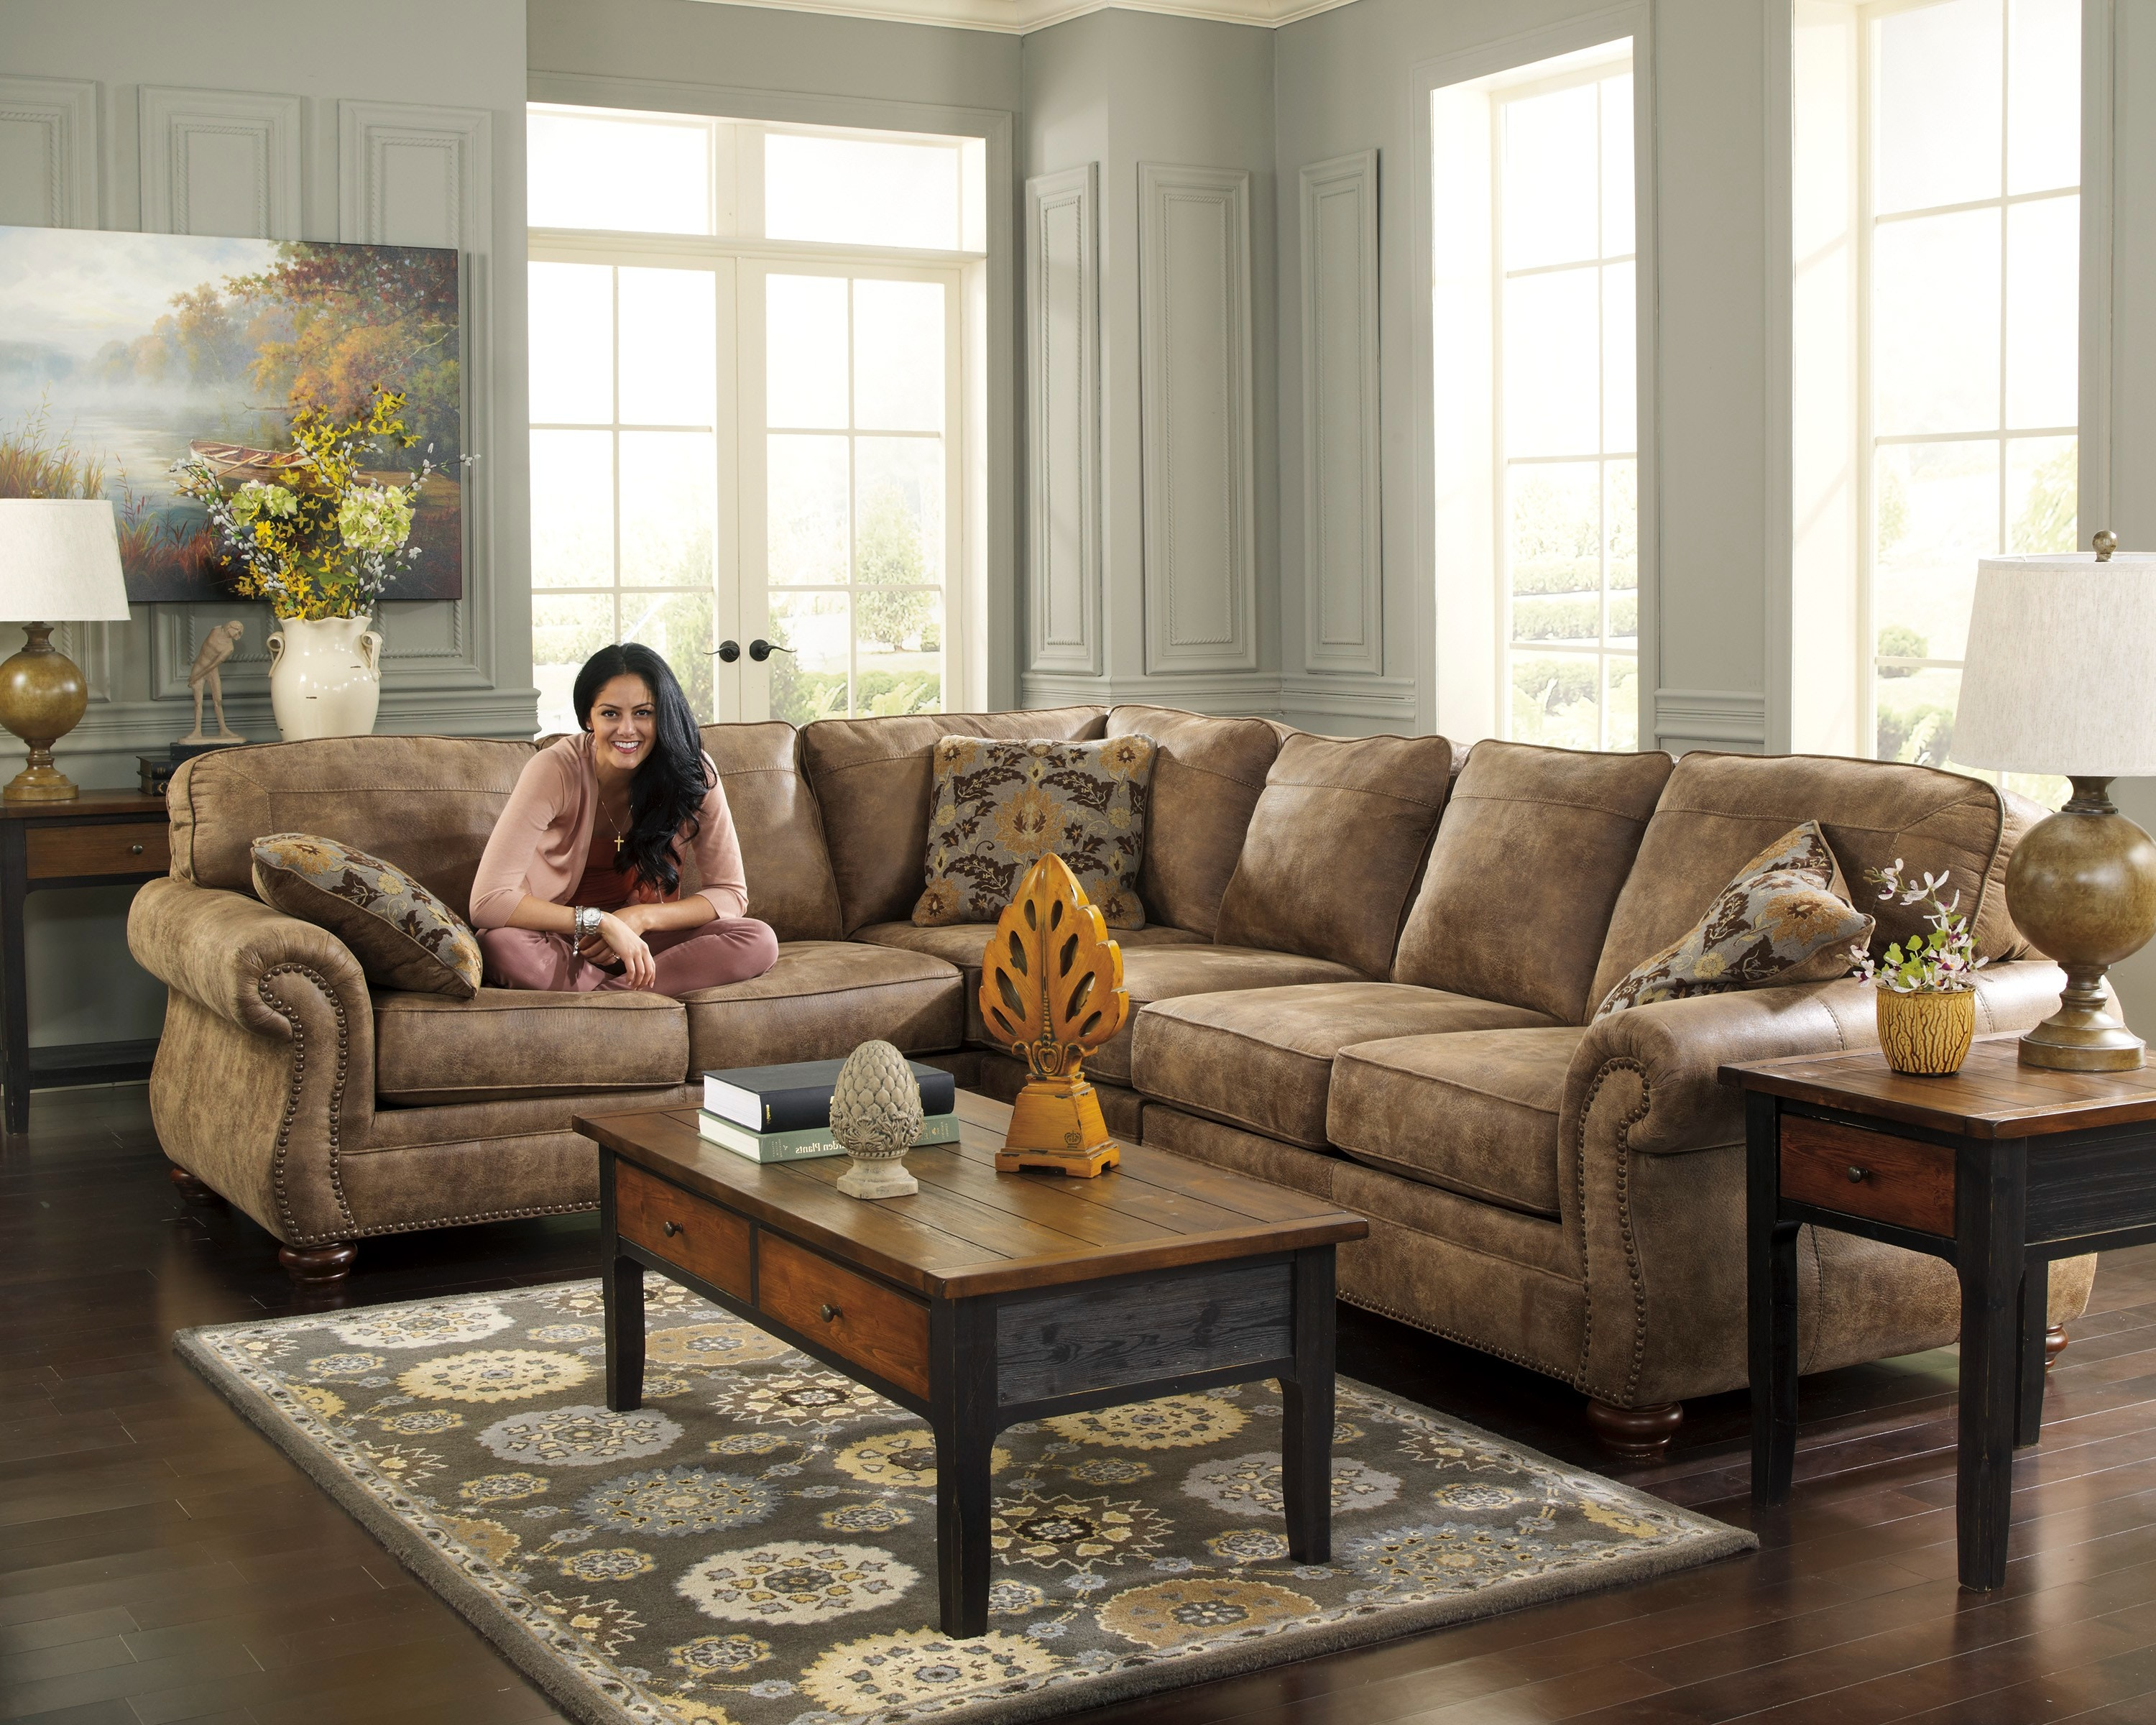 Signature Design By Ashley Larkinhurst Earth 3pc Sectional Sofa 3190166SEC